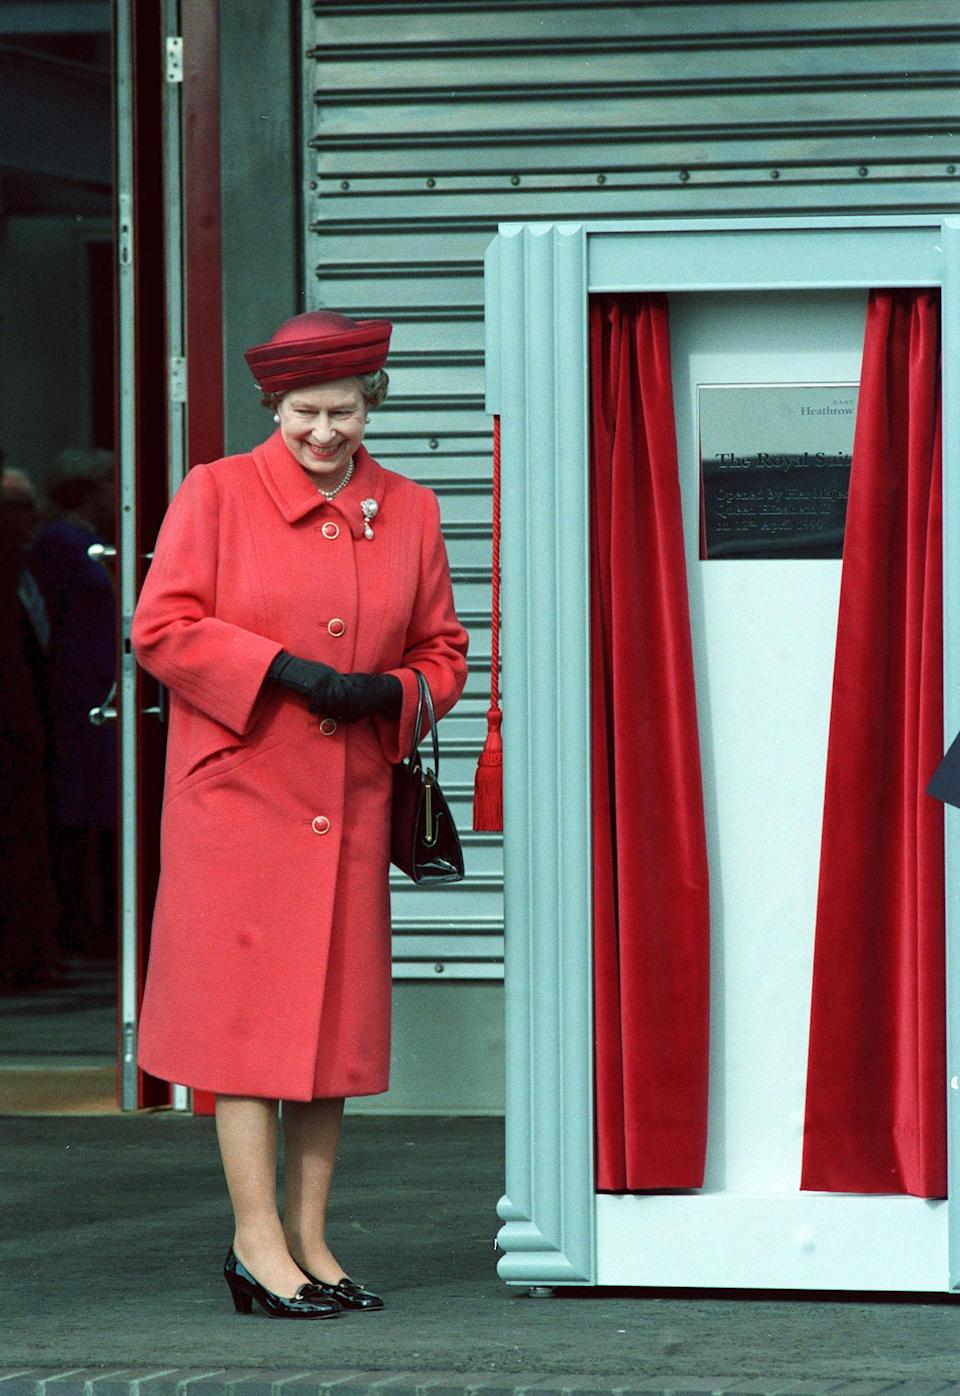 <p>Her Majesty the Queen opens the Royal Suite at Heathrow airport. (PA Archive) </p>